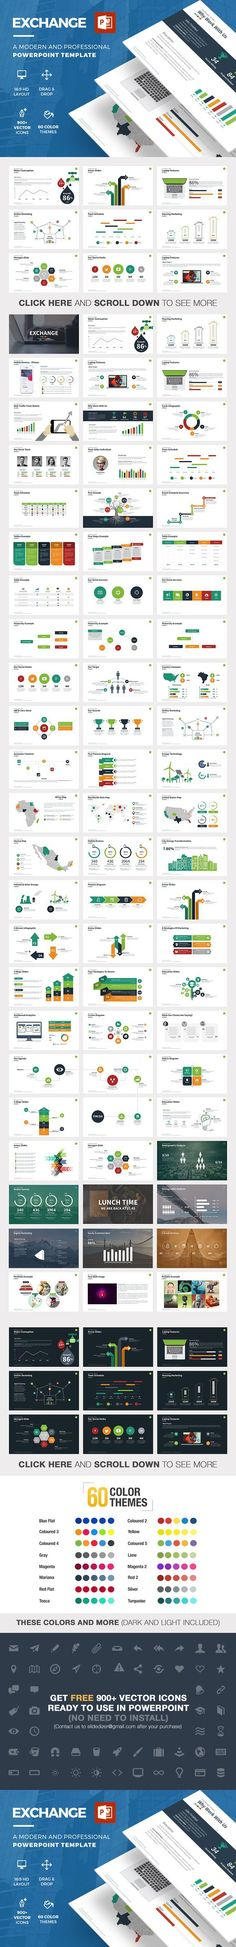 Exchange Powerpoint Template. Business Infographic. $15.00